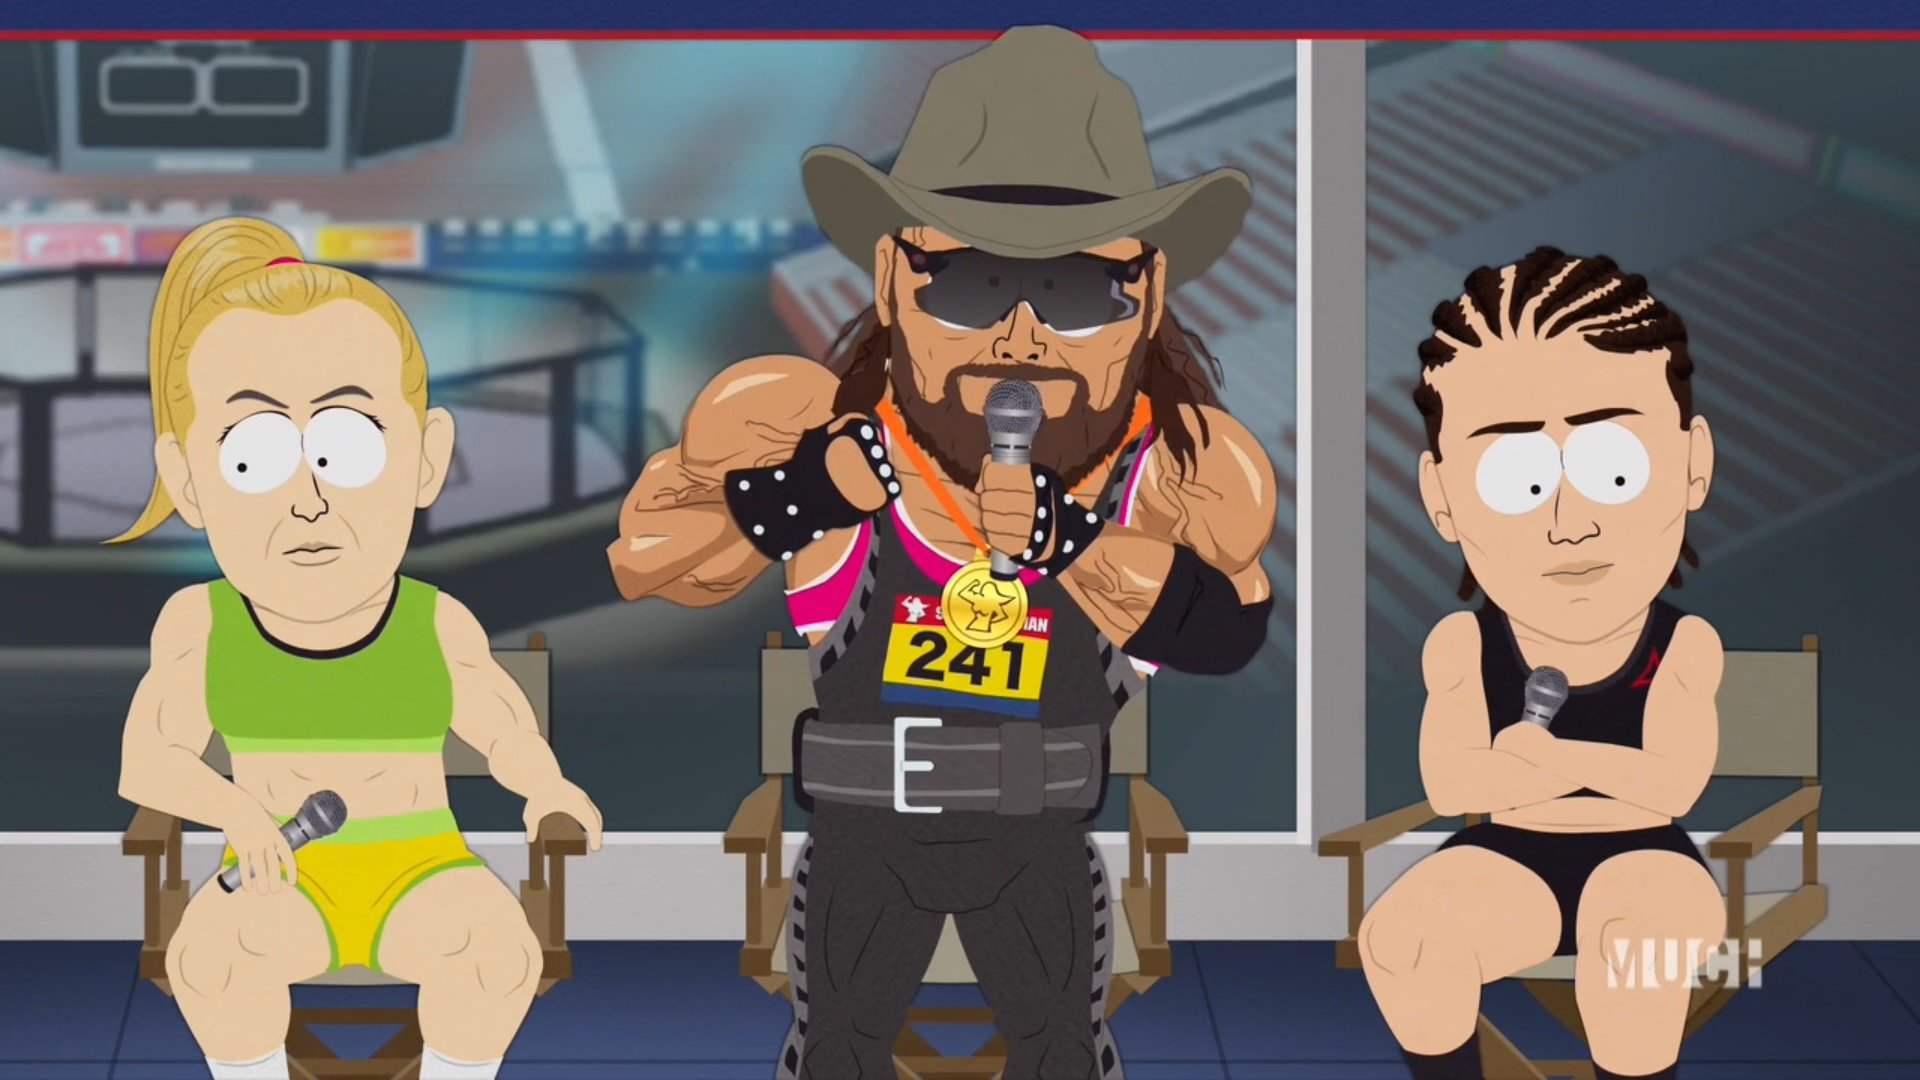 South Park Transgender Athletes Episode Controversy